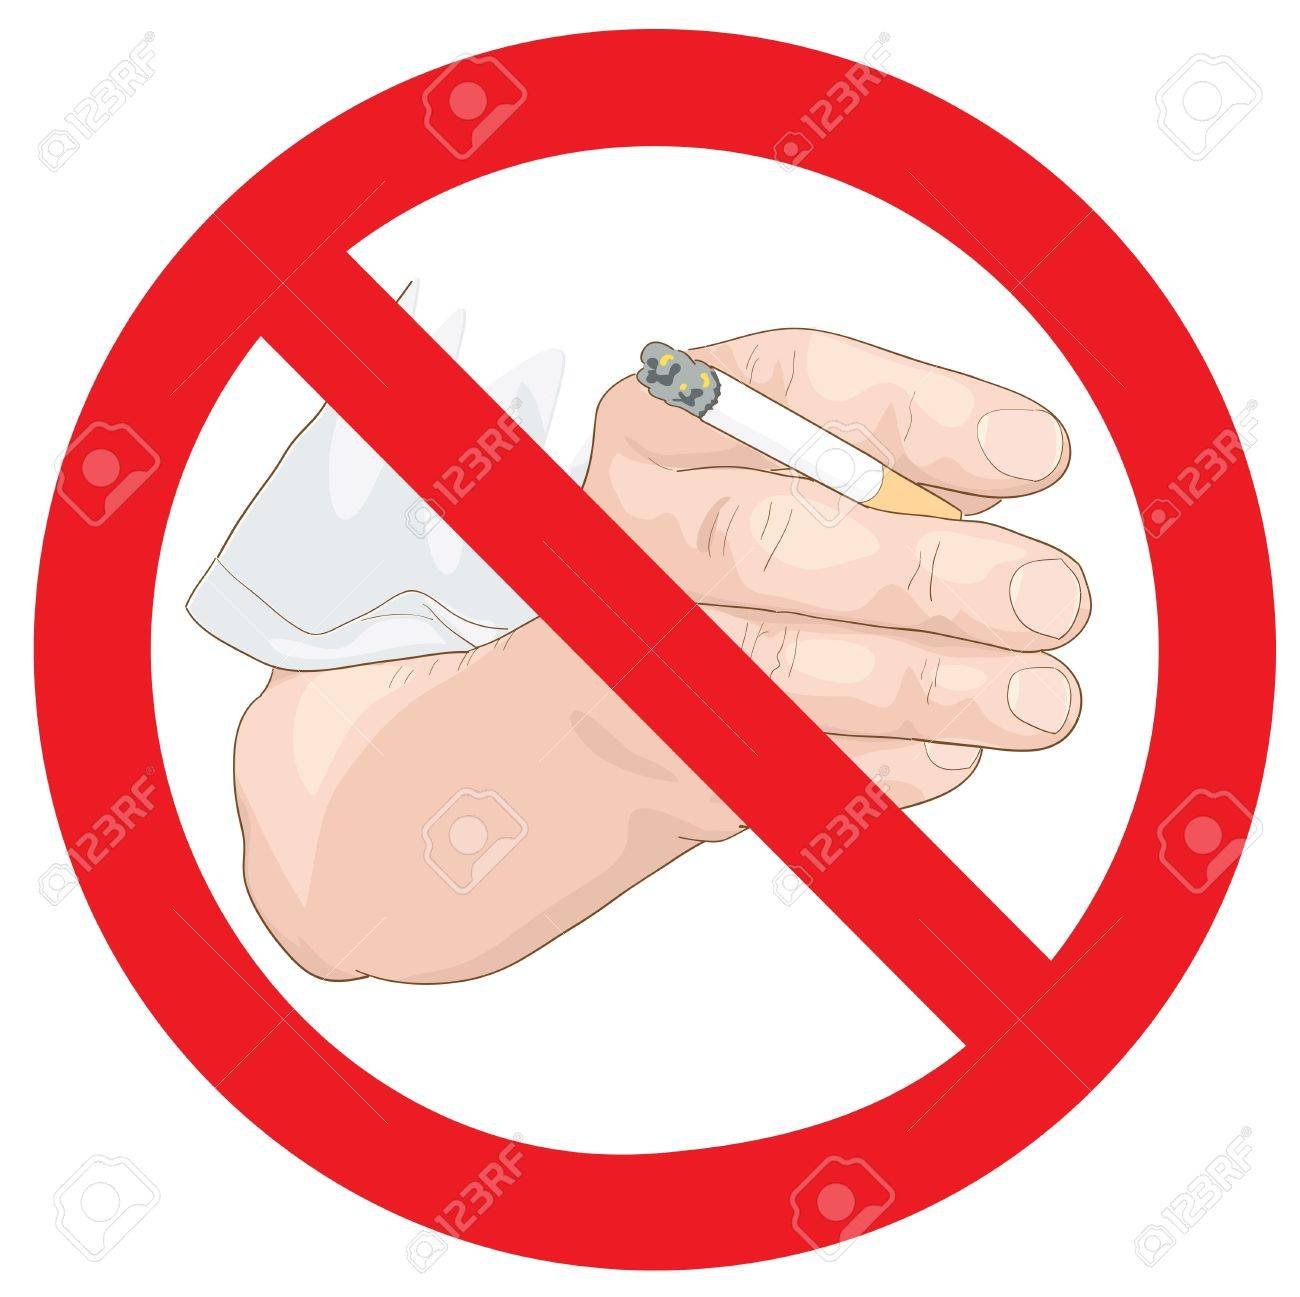 Stop smoking sign. Hand with a cigarette. Vector illustration. Stock Vector - 20407229